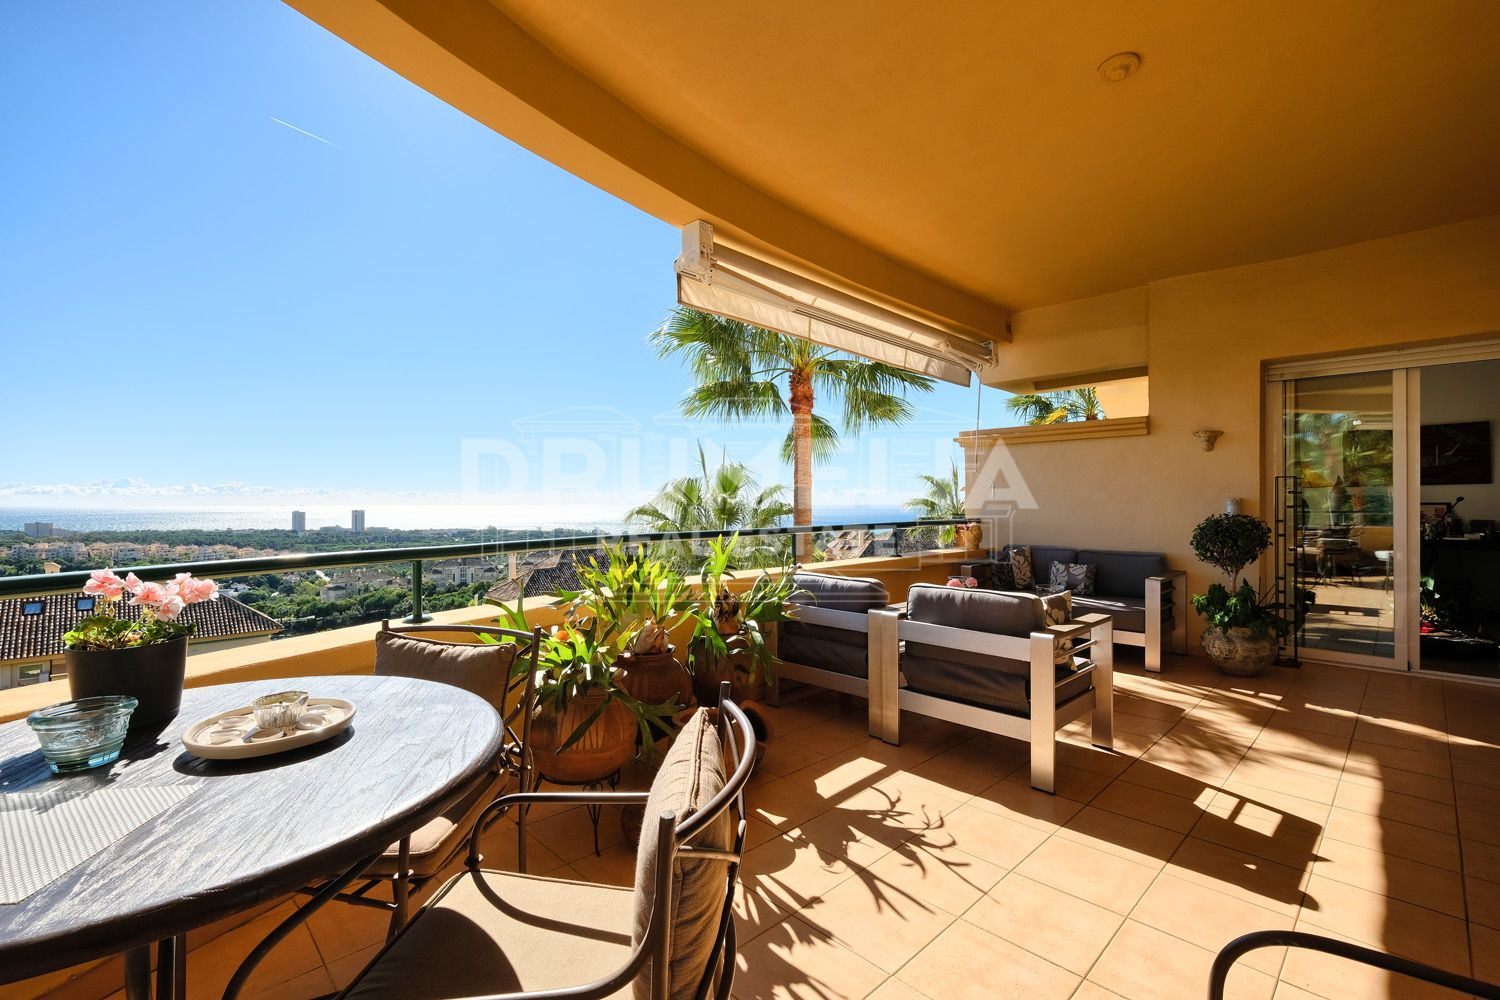 Marbella East, Marvellous Modern Classic Apartment in Elviria Hills, Marbella East (Marbella)